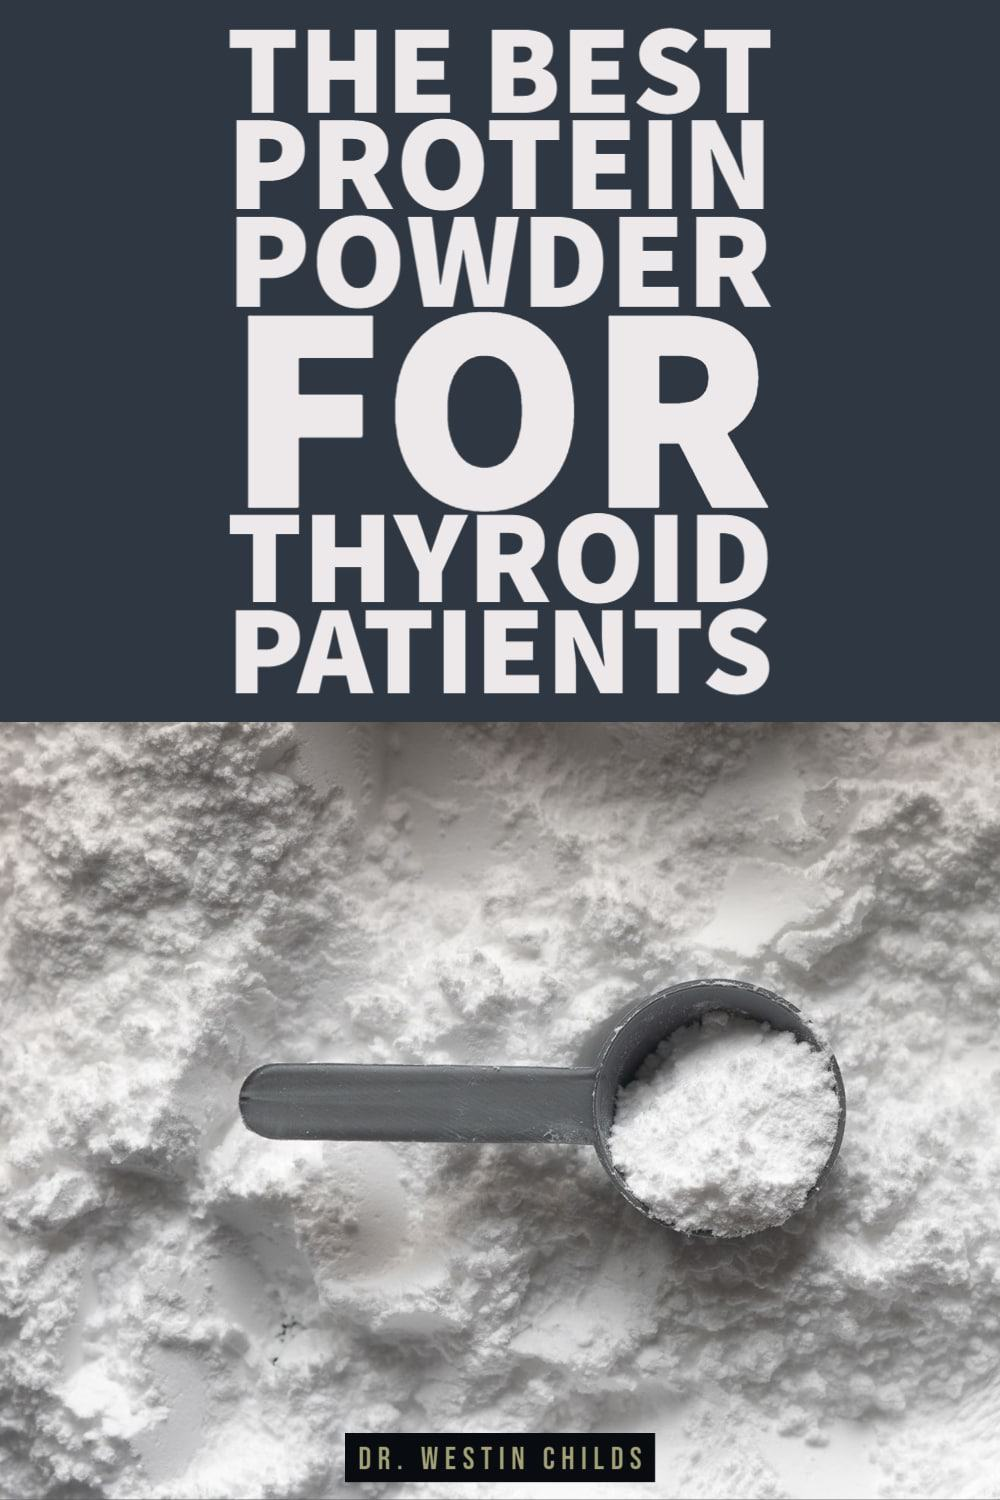 the best protein powder for thyroid patients